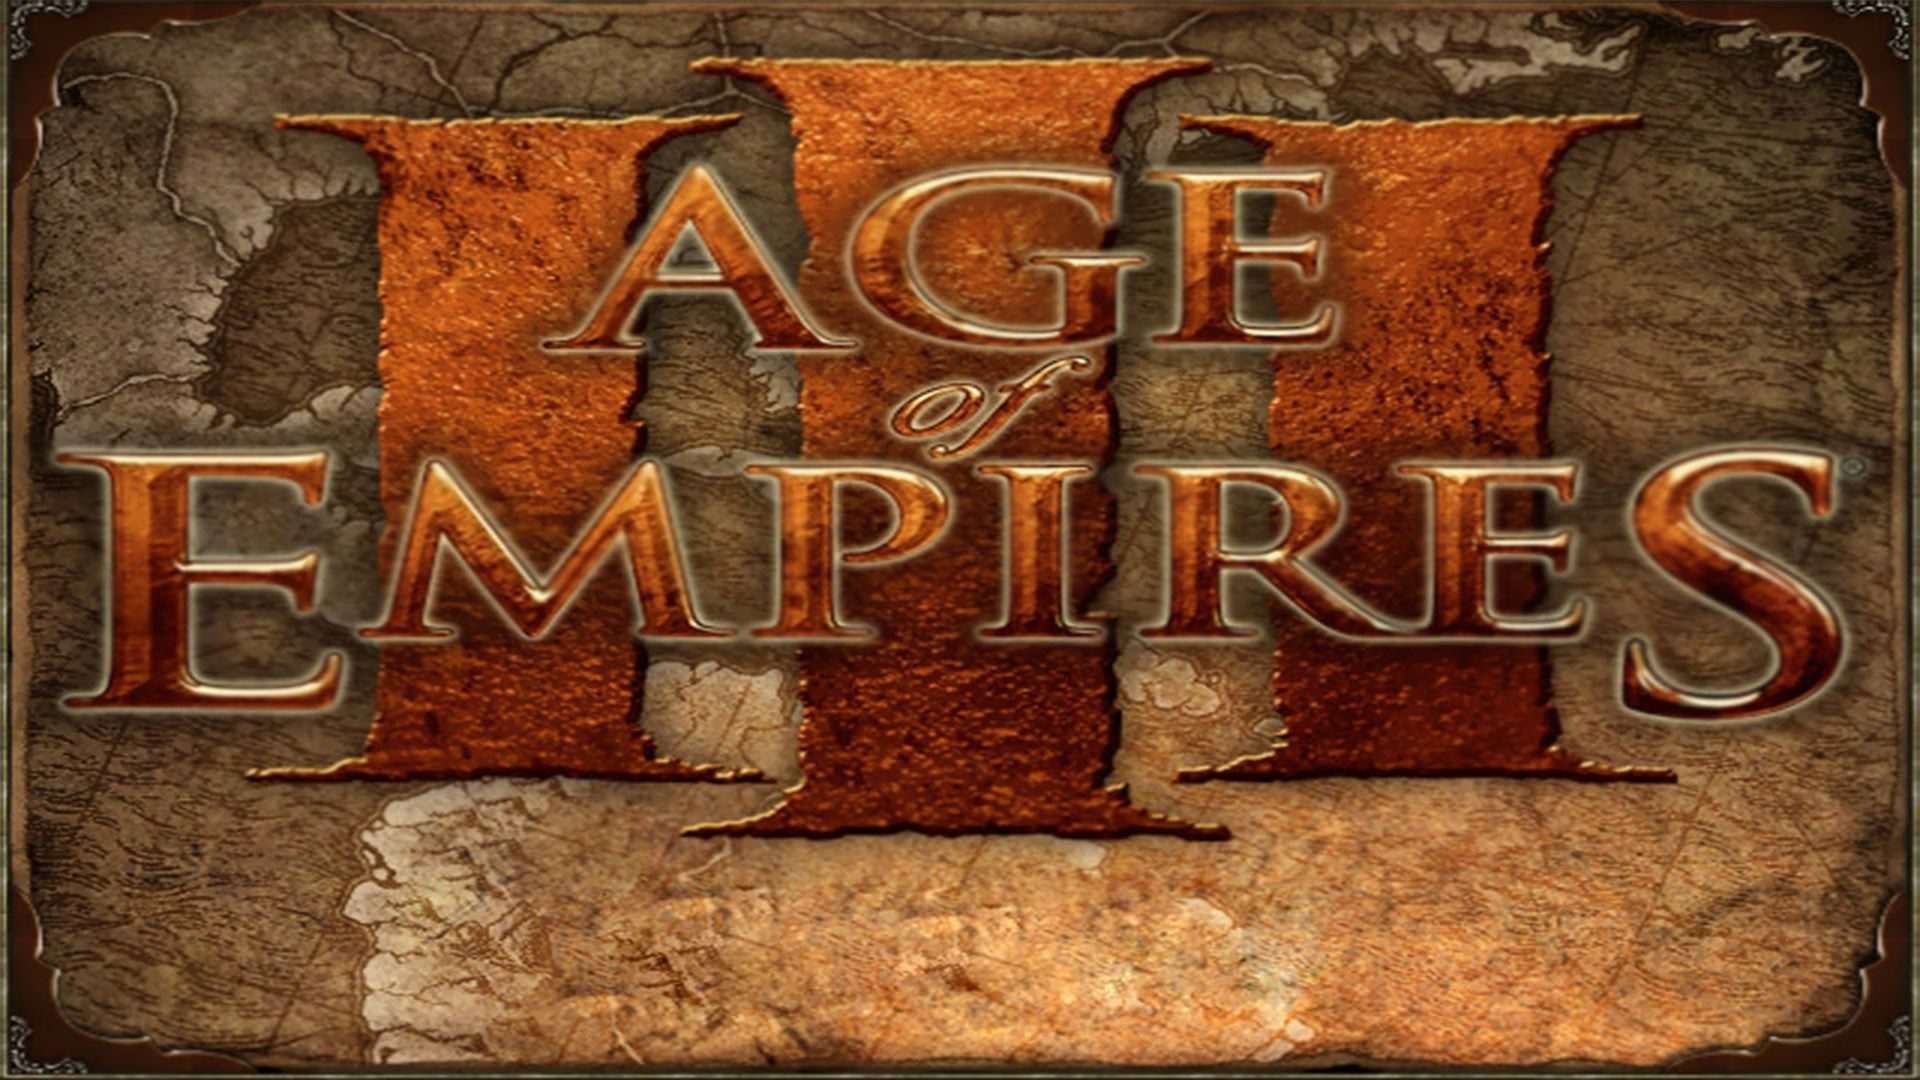 1920x1080 Computer Wallpaper For Age Of Empires Iii Age Of